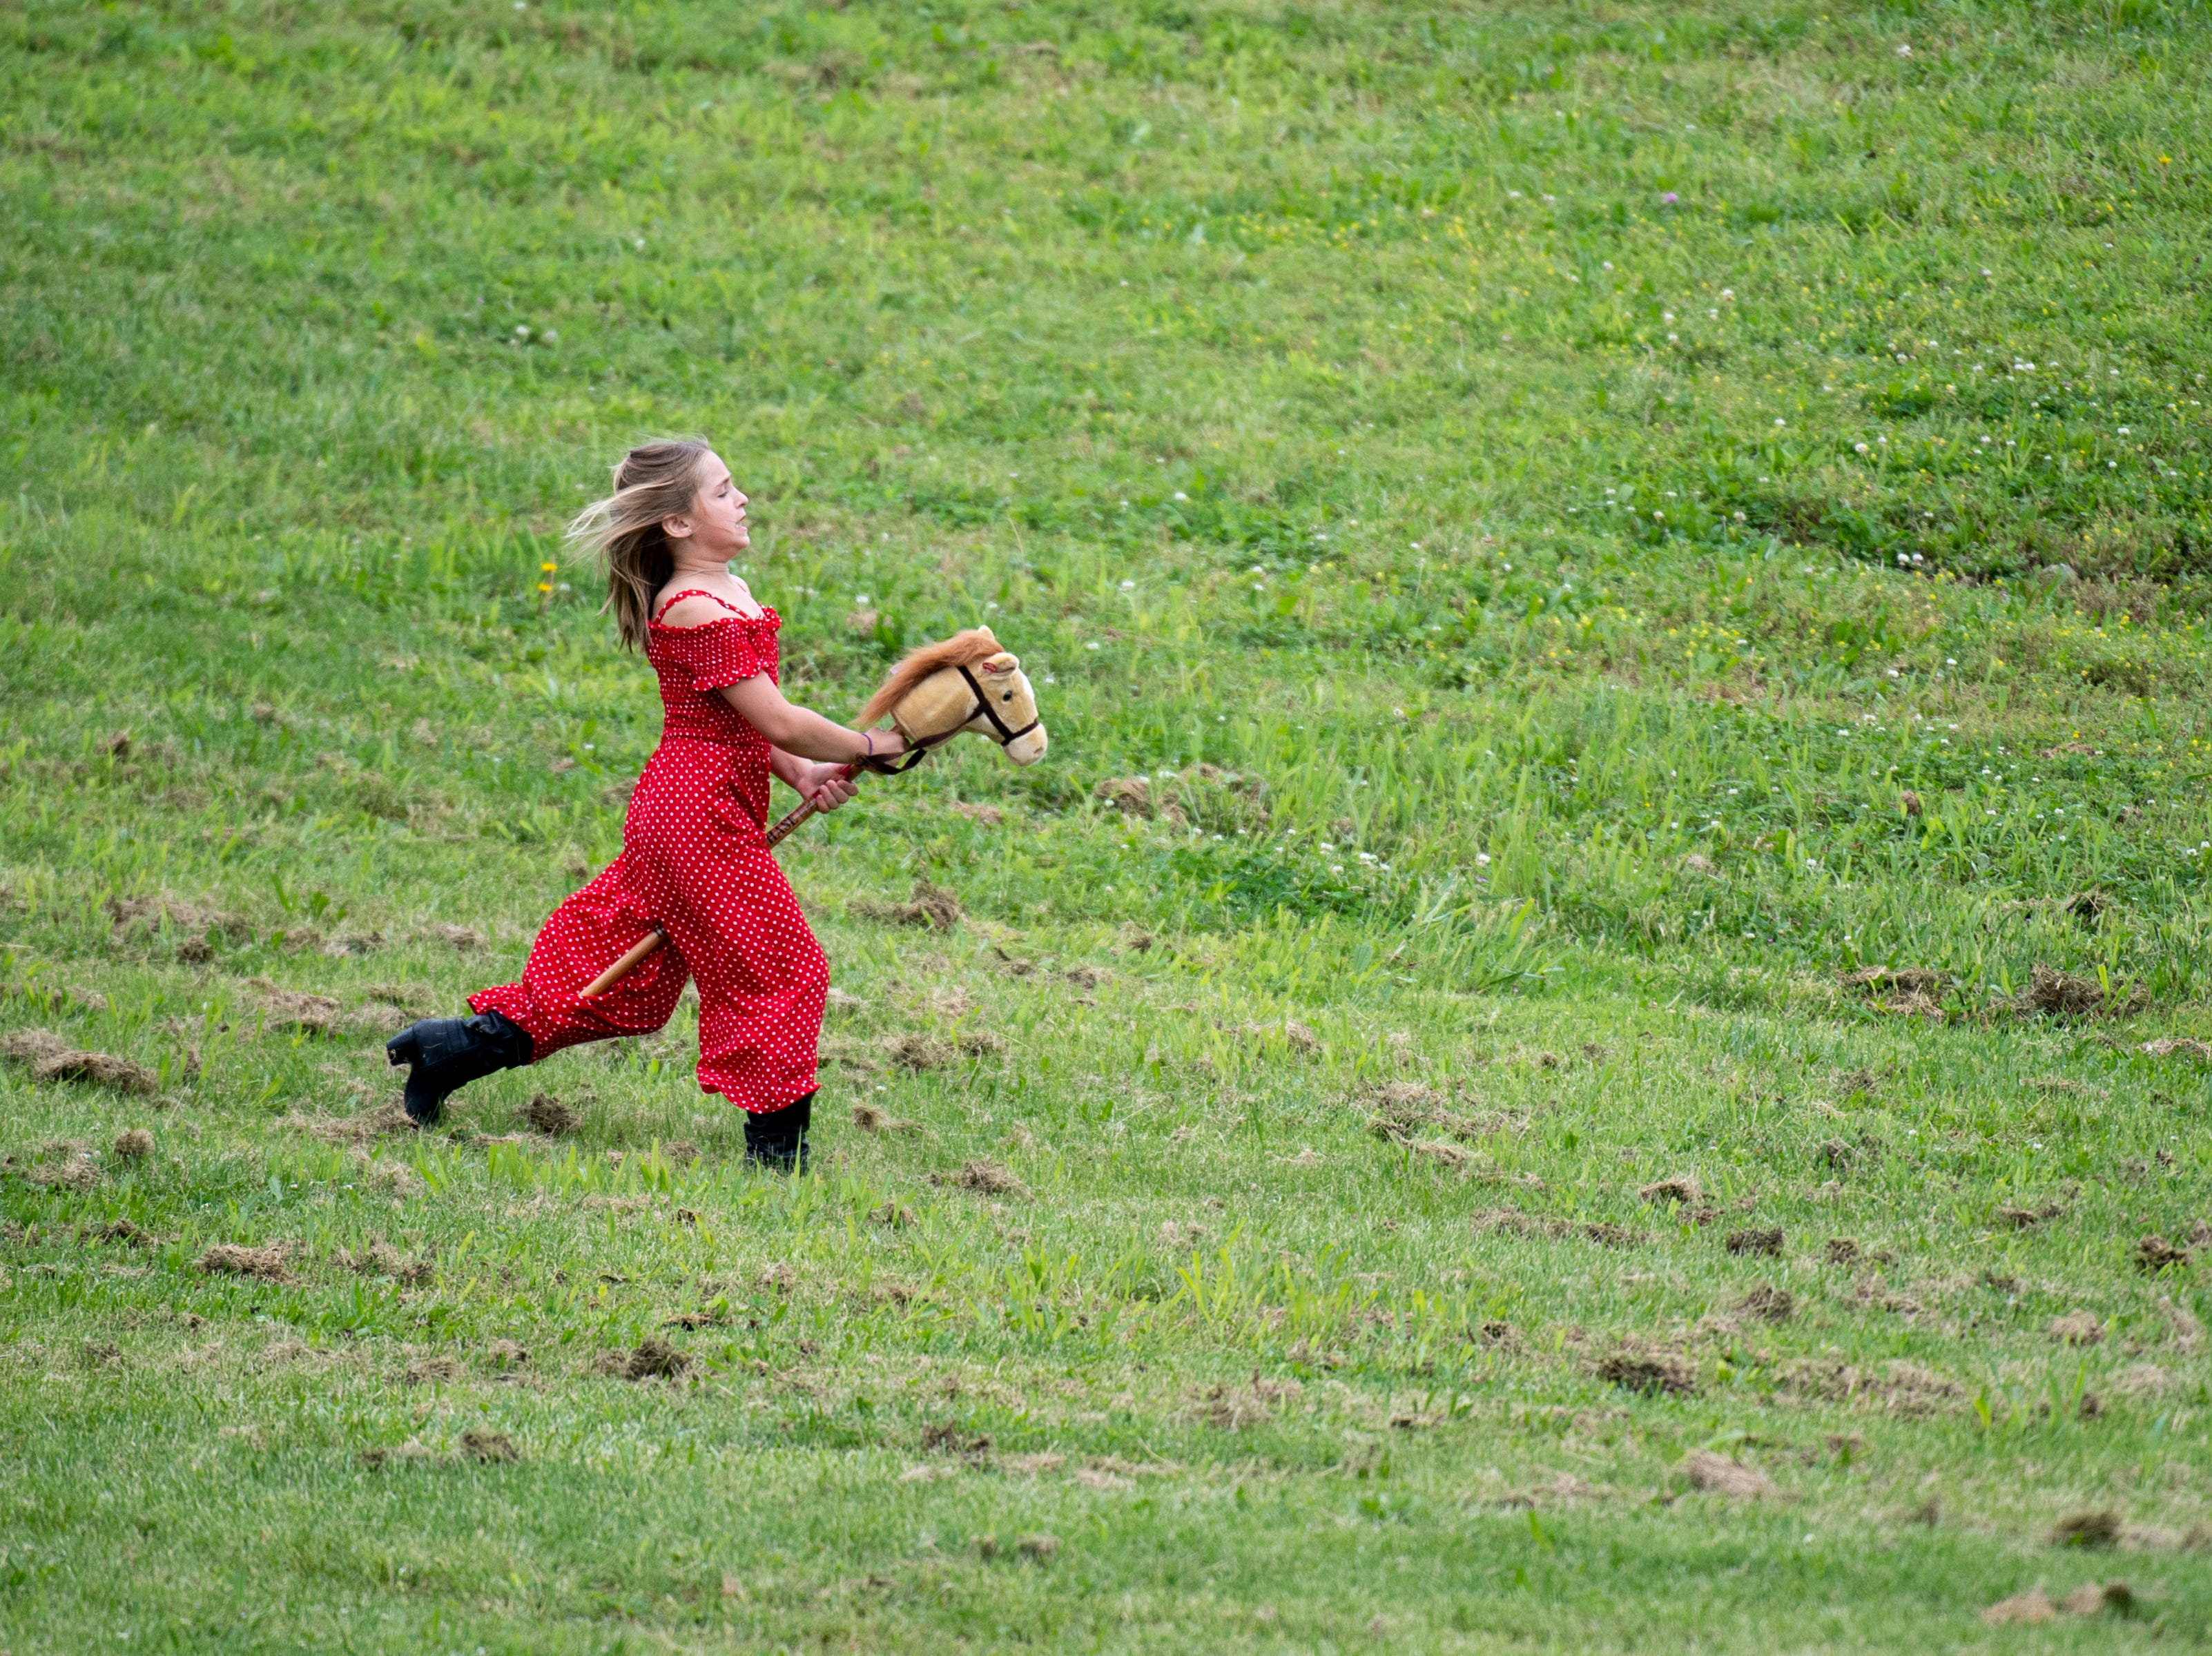 A girl plays during the Iroquois Steeplechase at Percy Warner Park Saturday, May 11, 2019, in Nashville, Tenn.